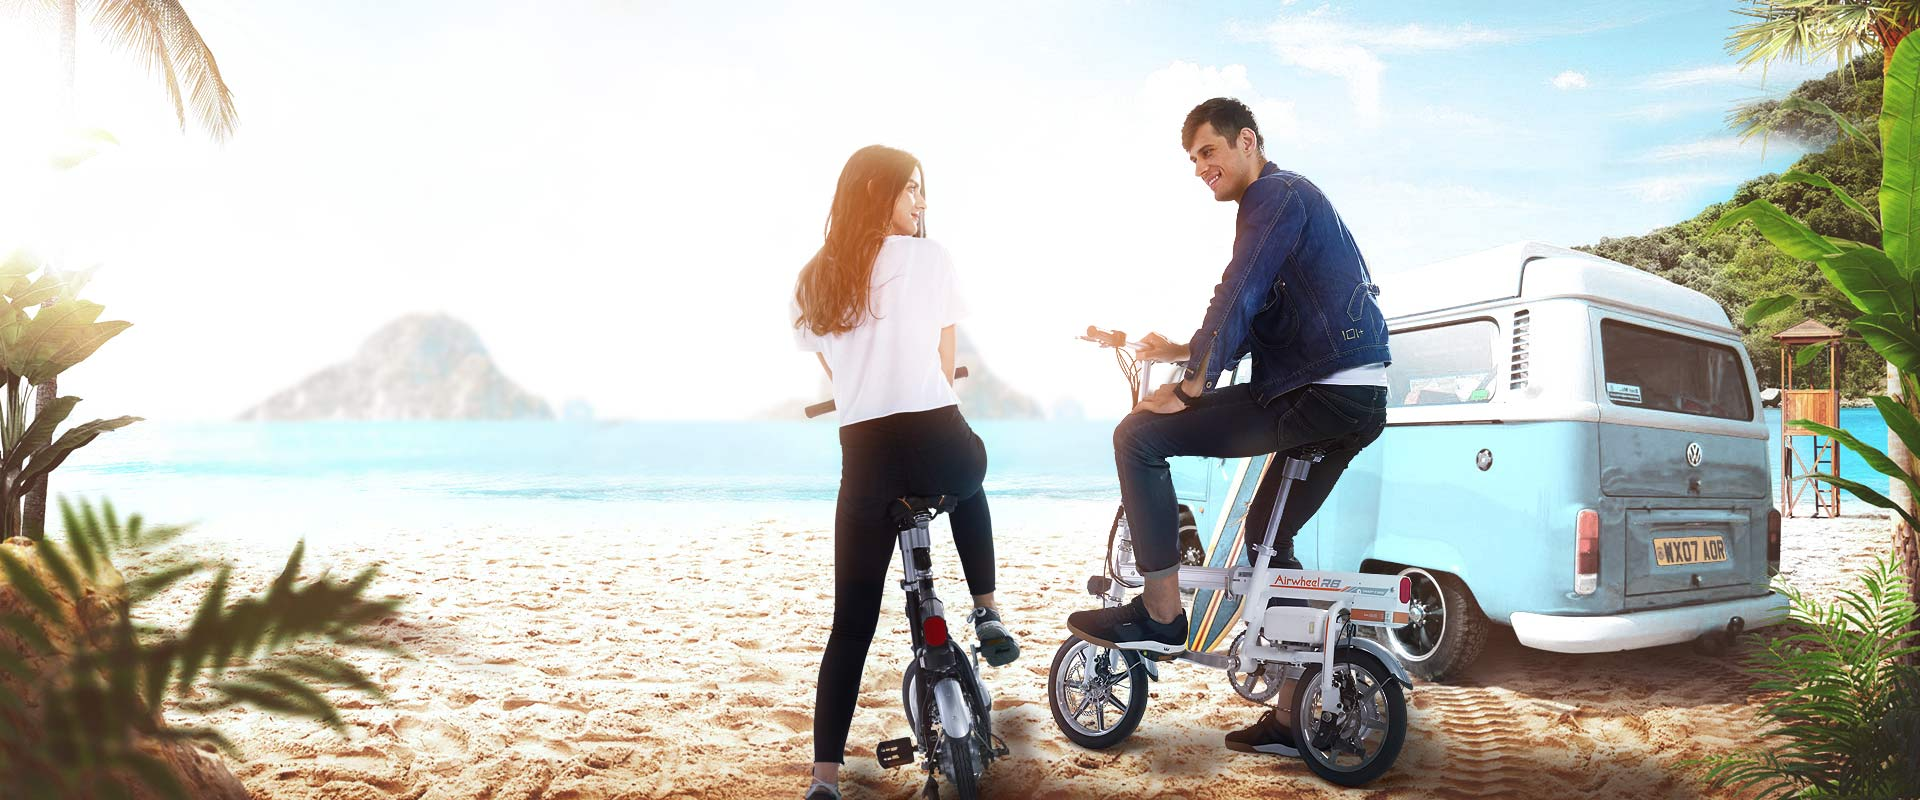 Purchasing an Electric Bike